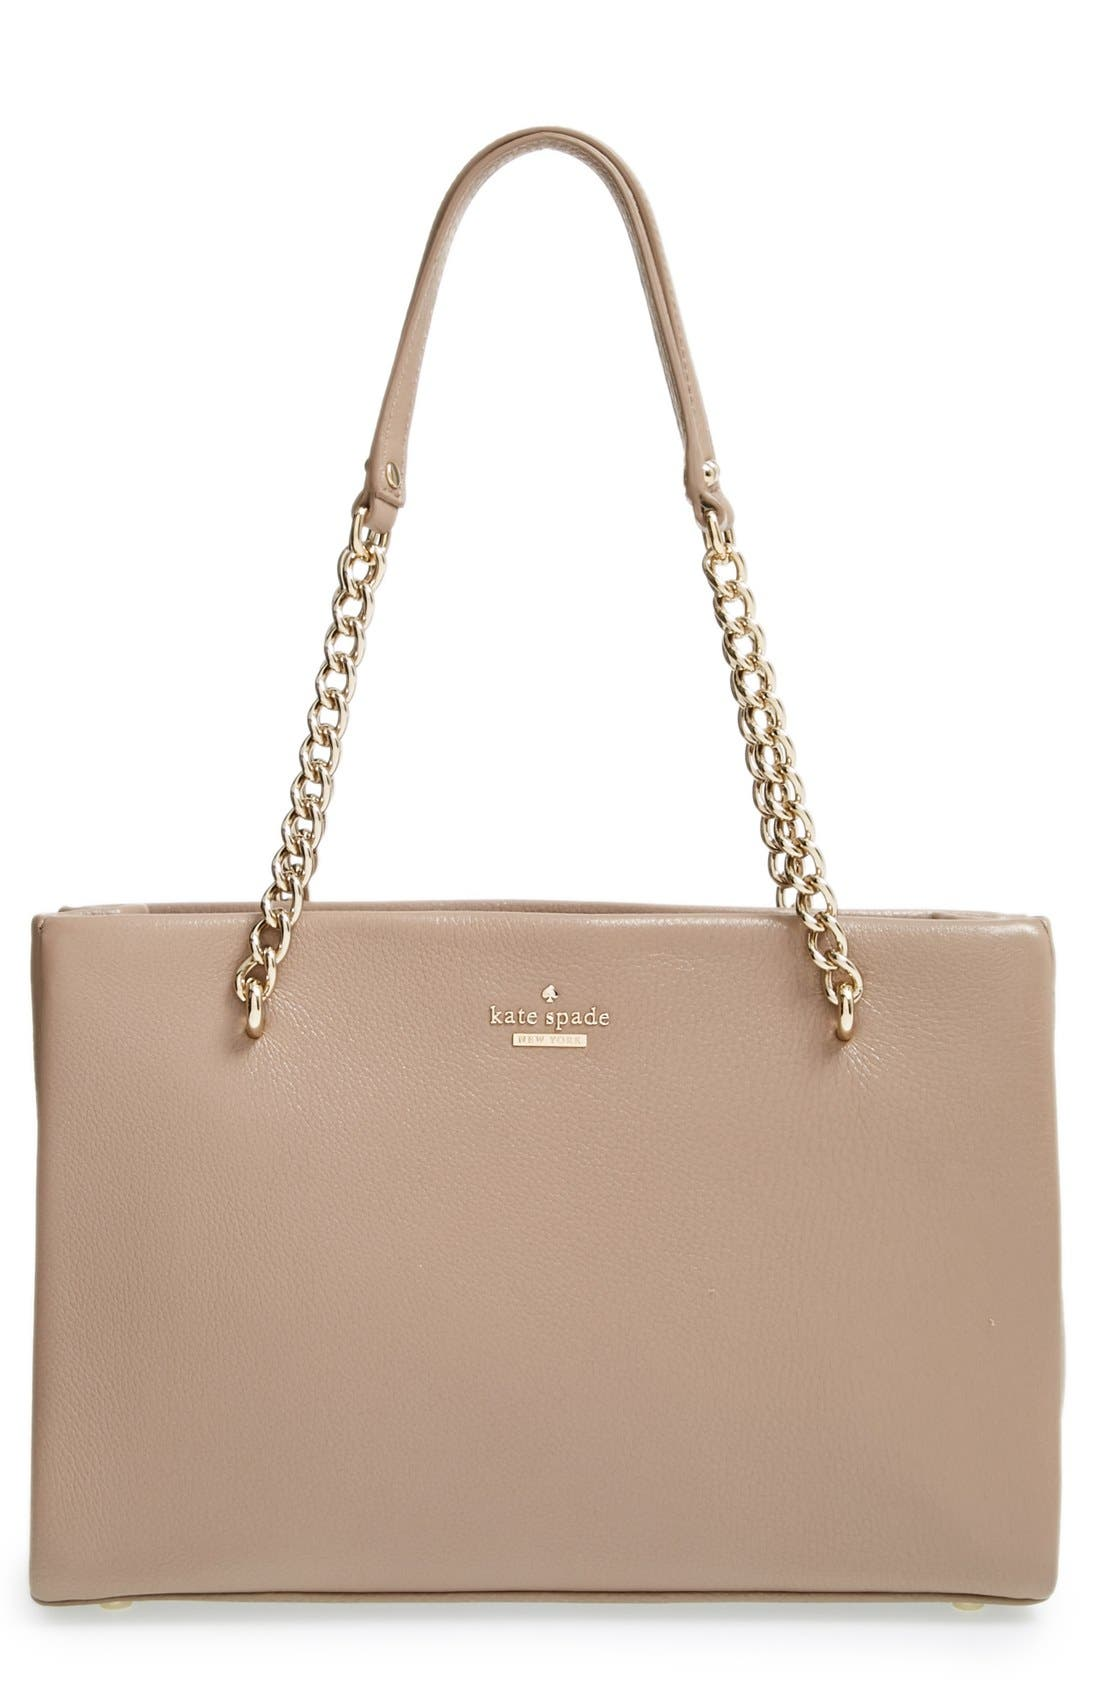 Alternate Image 1 Selected - kate spade new york 'emerson place - small phoebe' leather shoulder bag